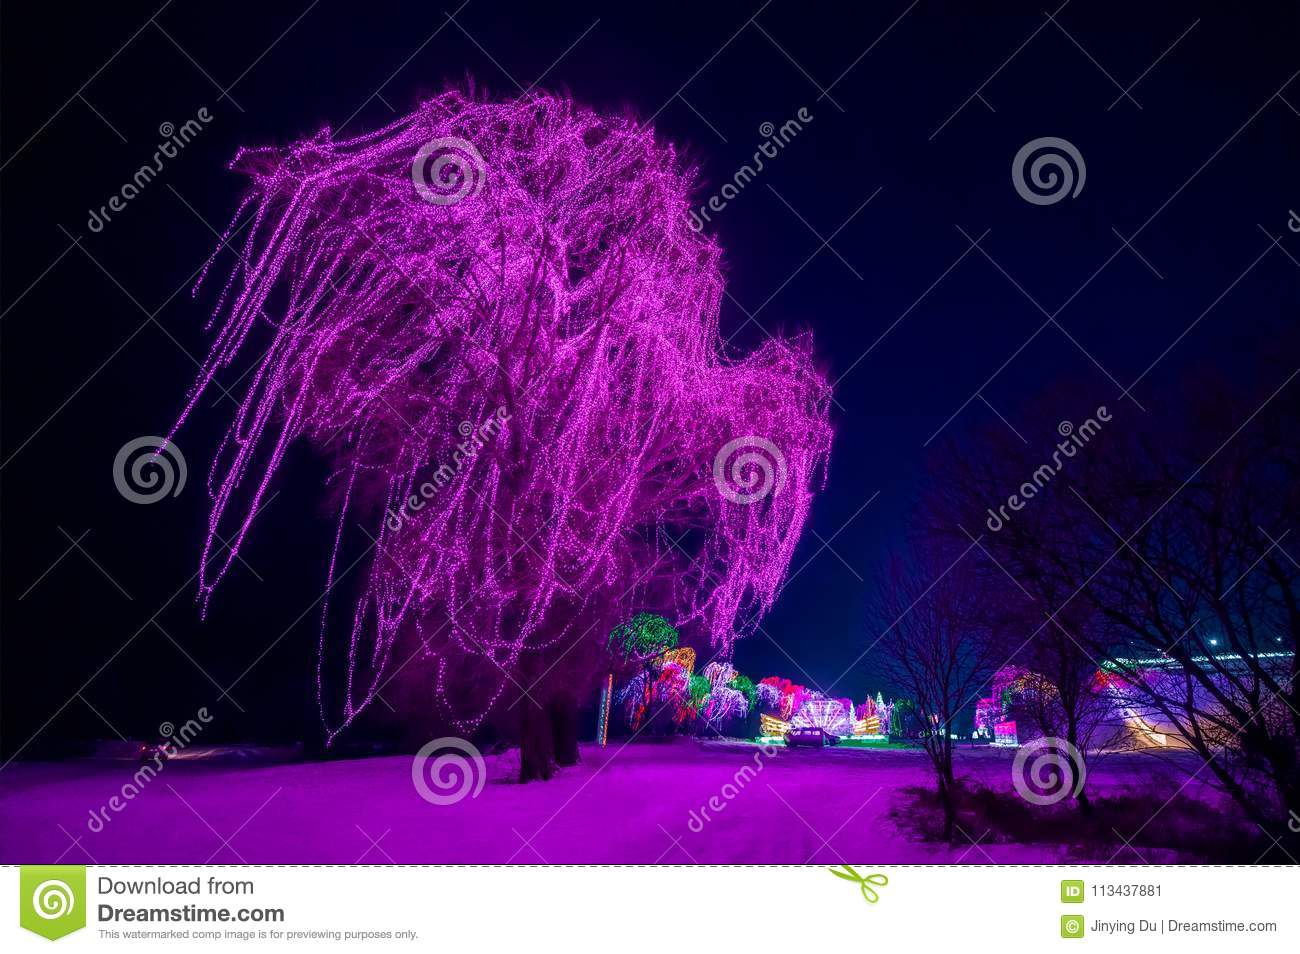 A big tree decorated with purple lights